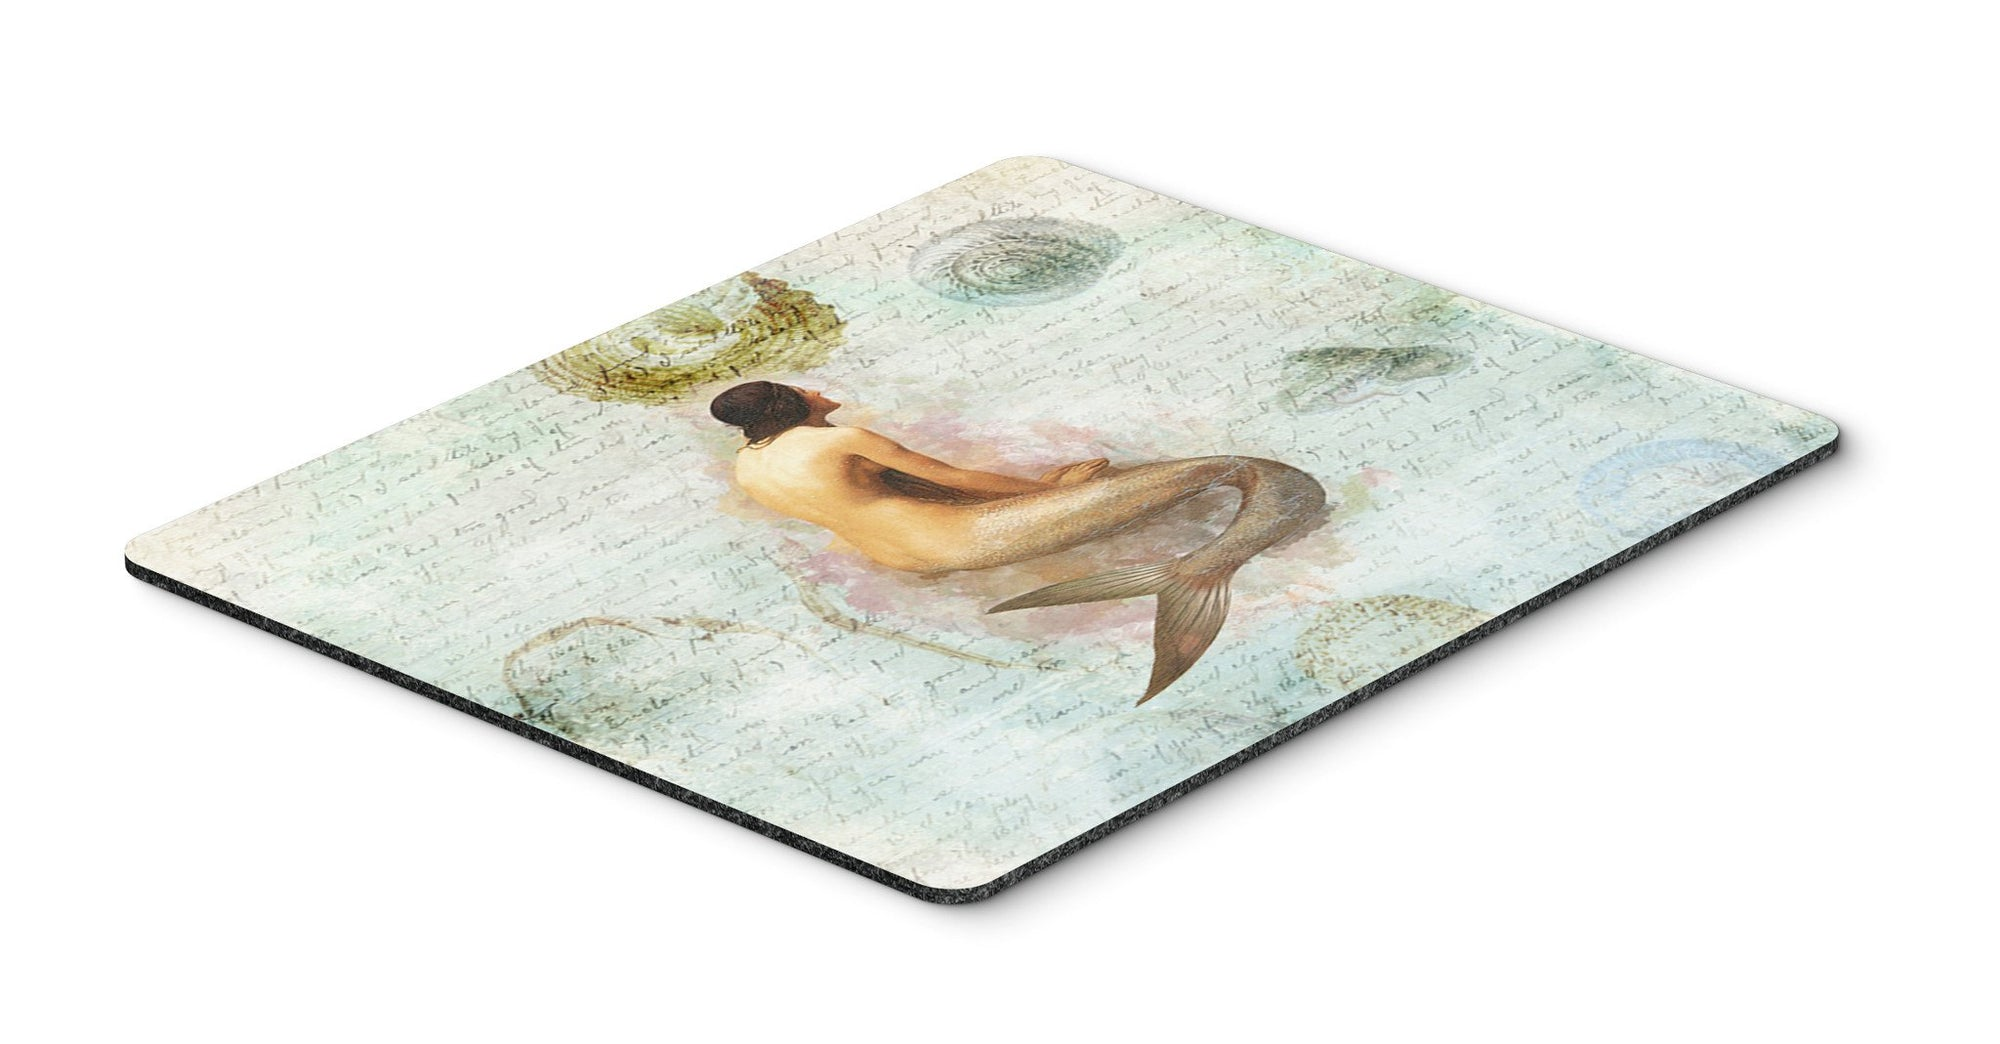 Buy this Mermaids and Mermen  Mouse Pad, Hot Pad or Trivet